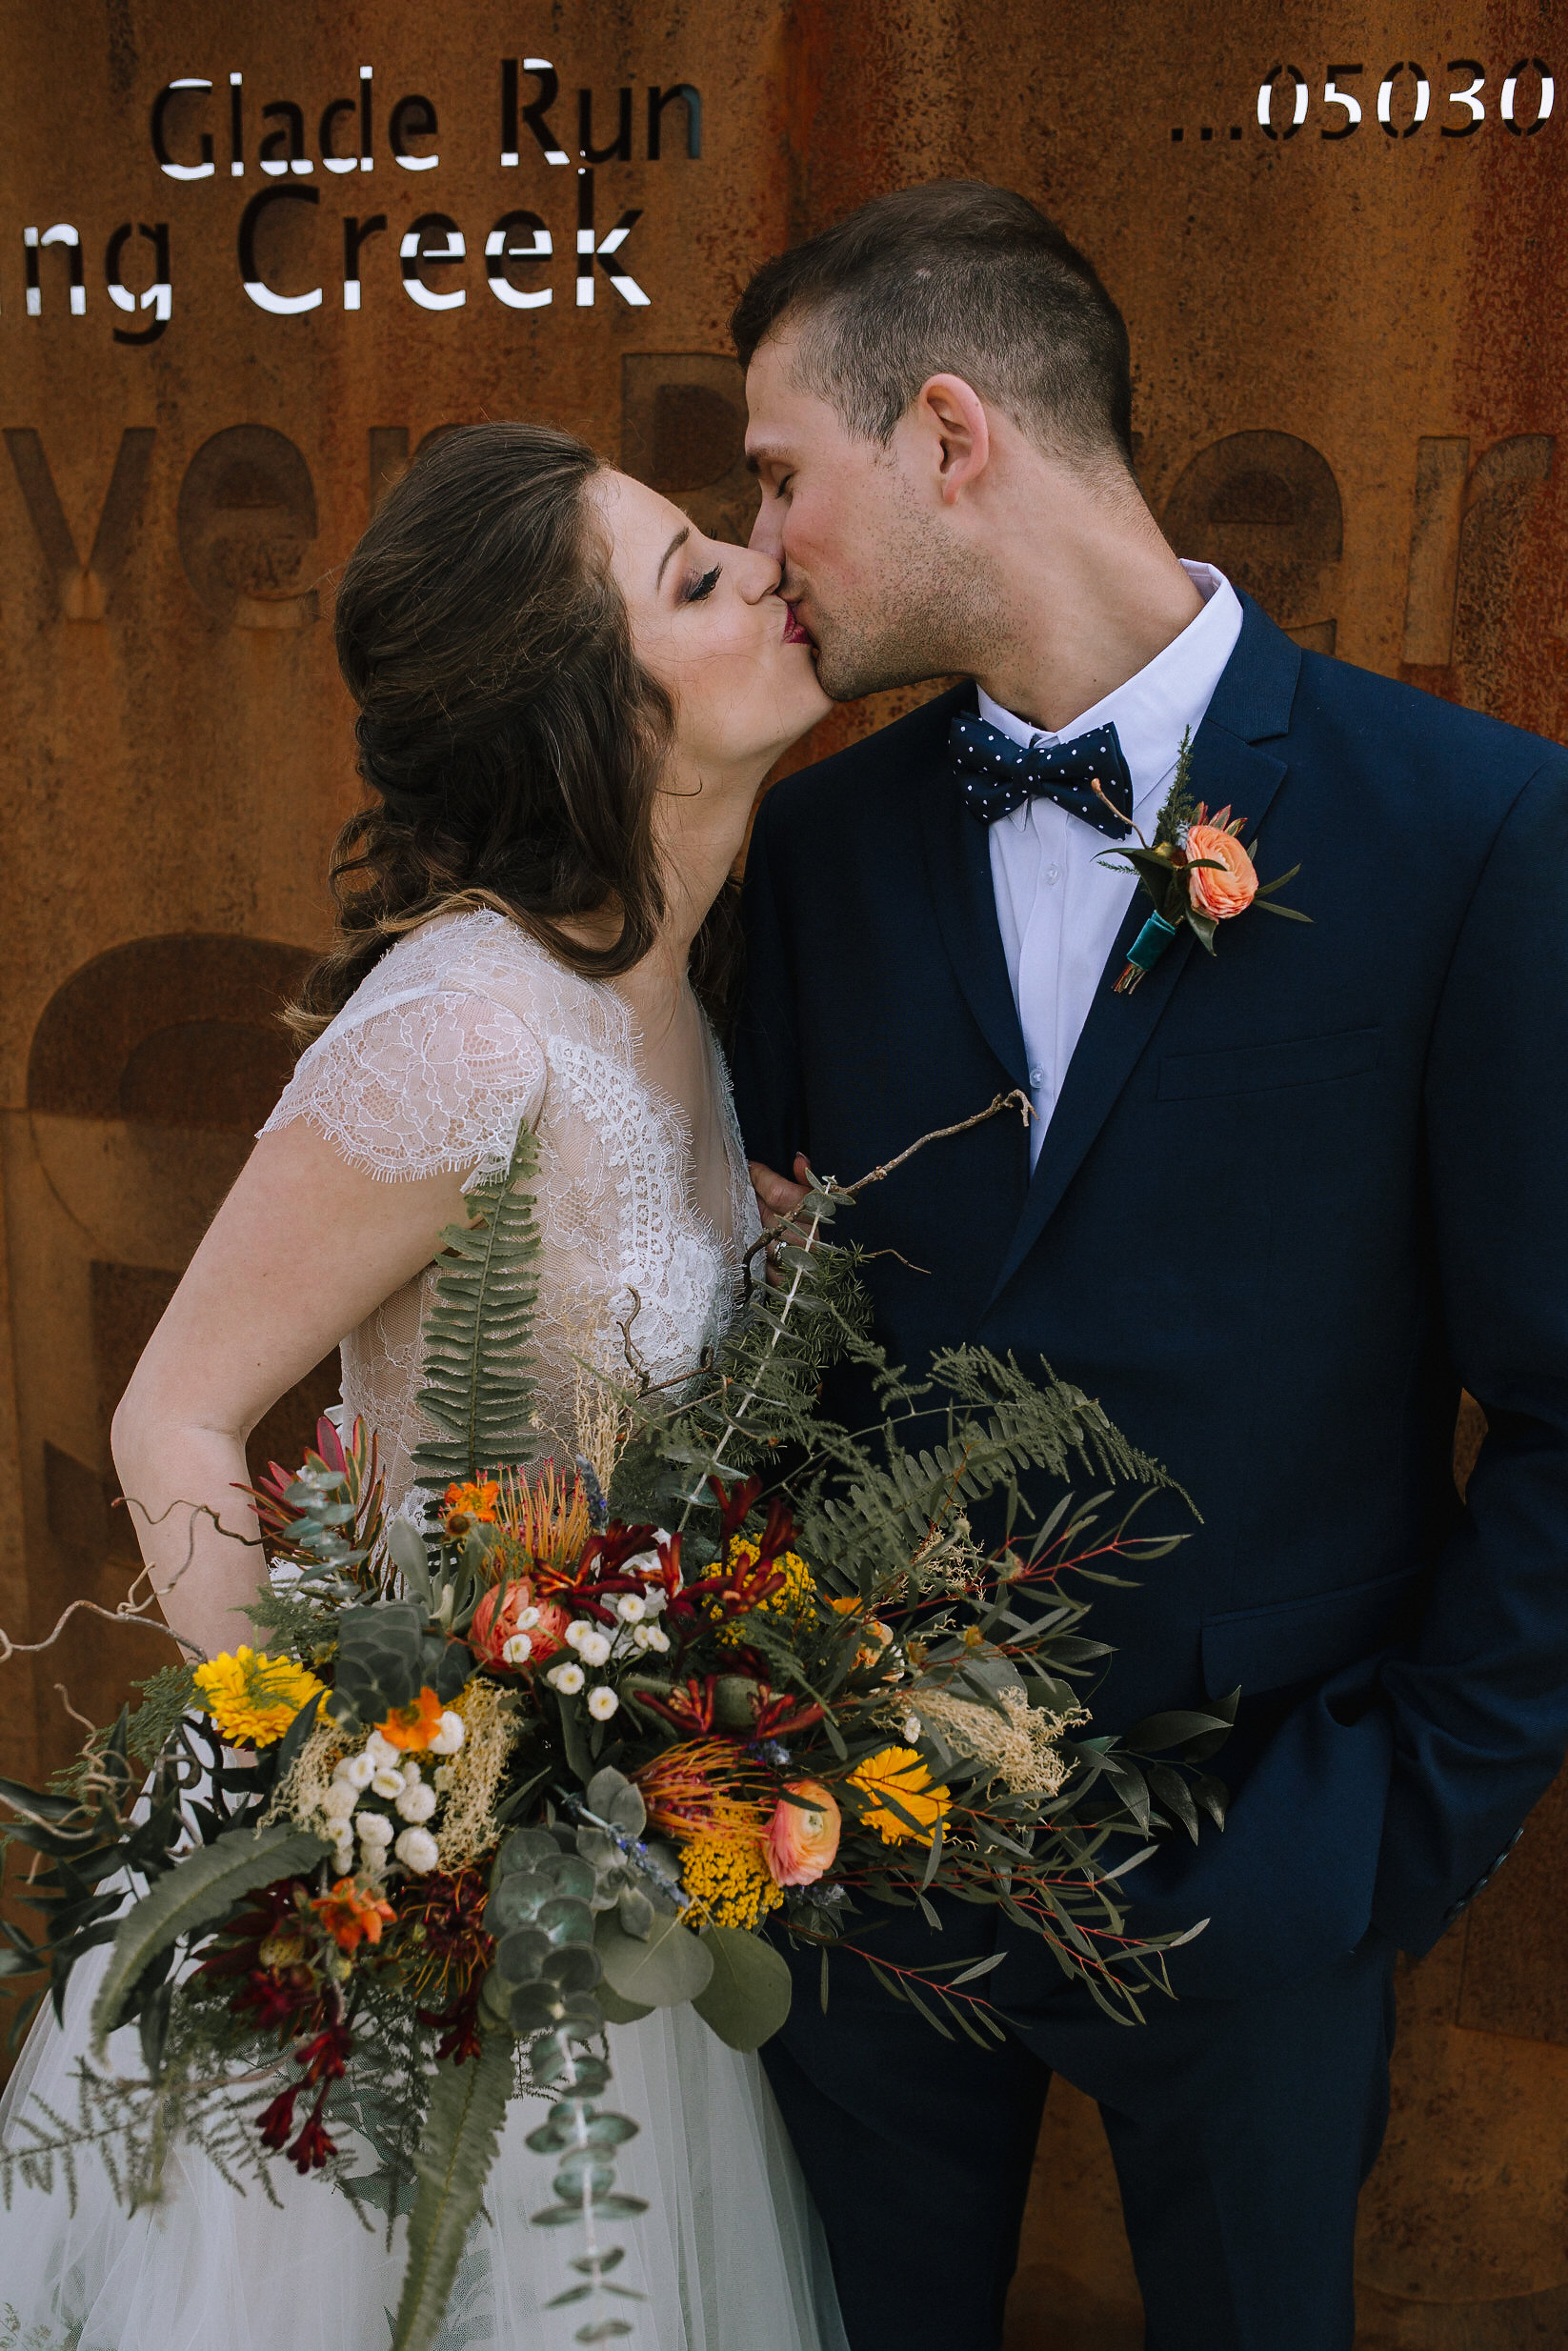 Bohemian wedding at Chatham University, Eden Hall Farm designed by Exhale Events. Bride's look from Blanc de Blanc Bridal, Melissa Gown by Divine Atelier. Groom's suit from H&M. Bridal bouquet and boutineer from Community Flower Shop. Hair & makeup by JL Makeup Studio.